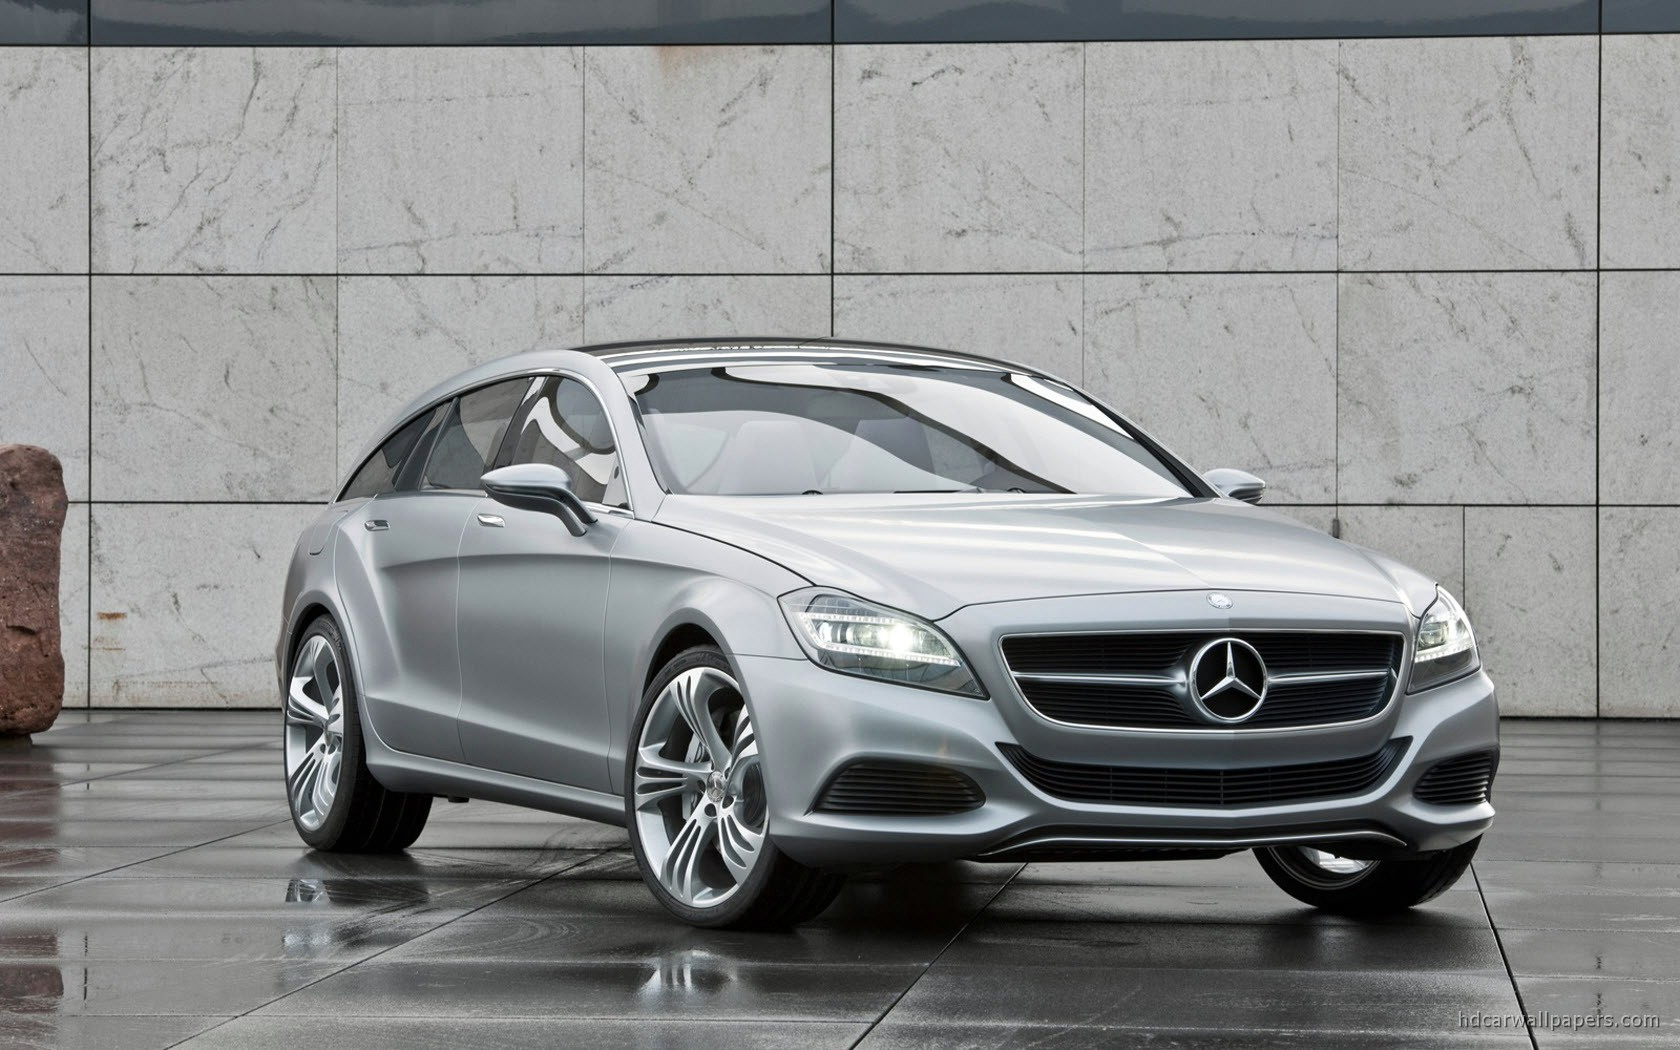 benz mercedes cars mid cls range amg segment shooting concept break middle